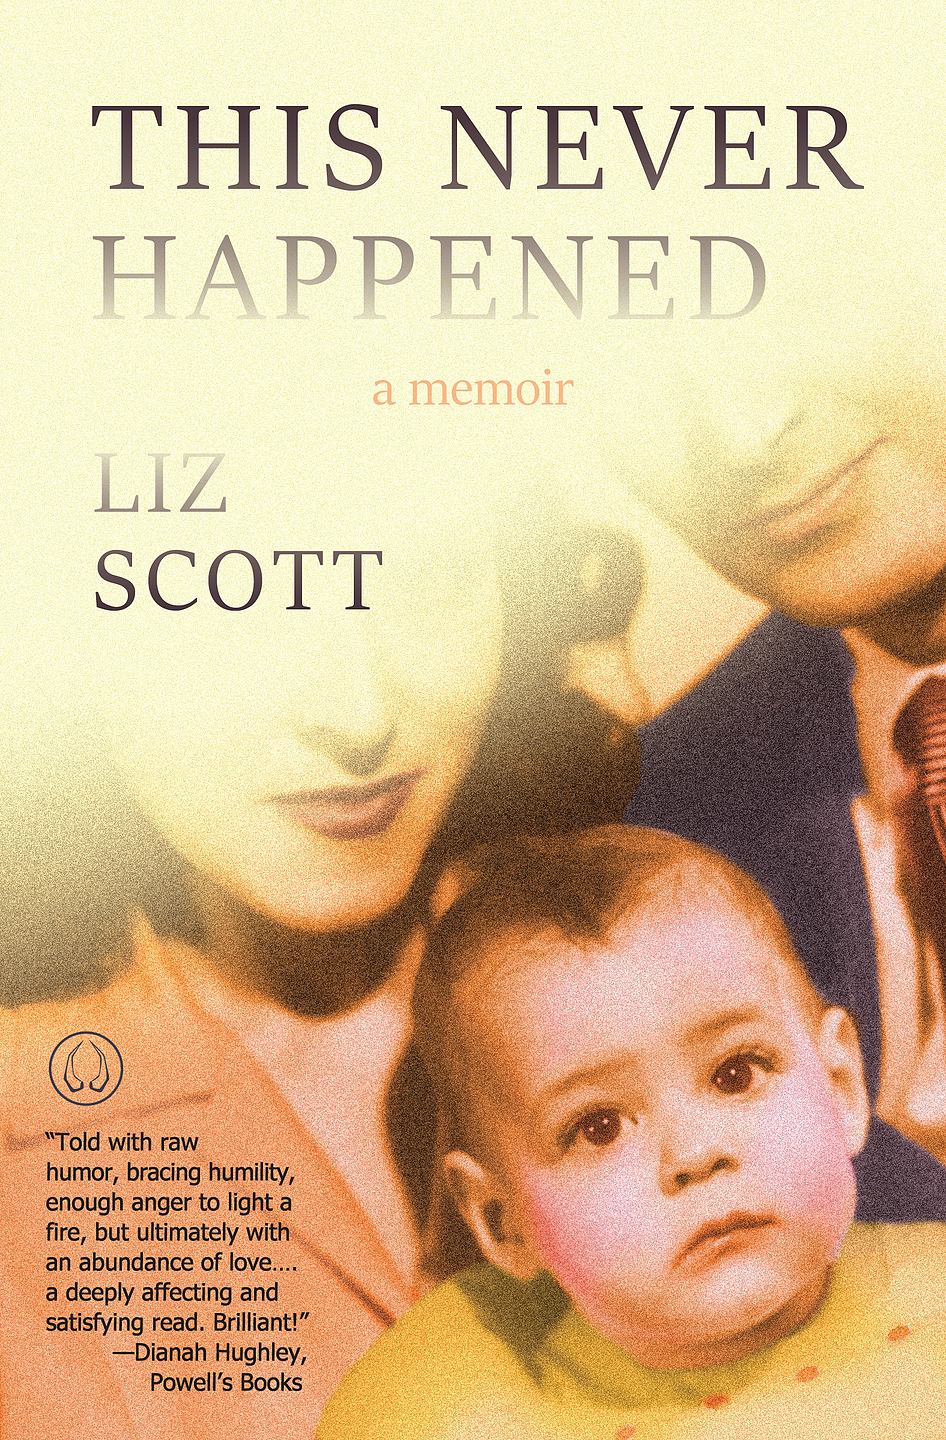 Liz_Scott_This_Never_Happened_Cover.png